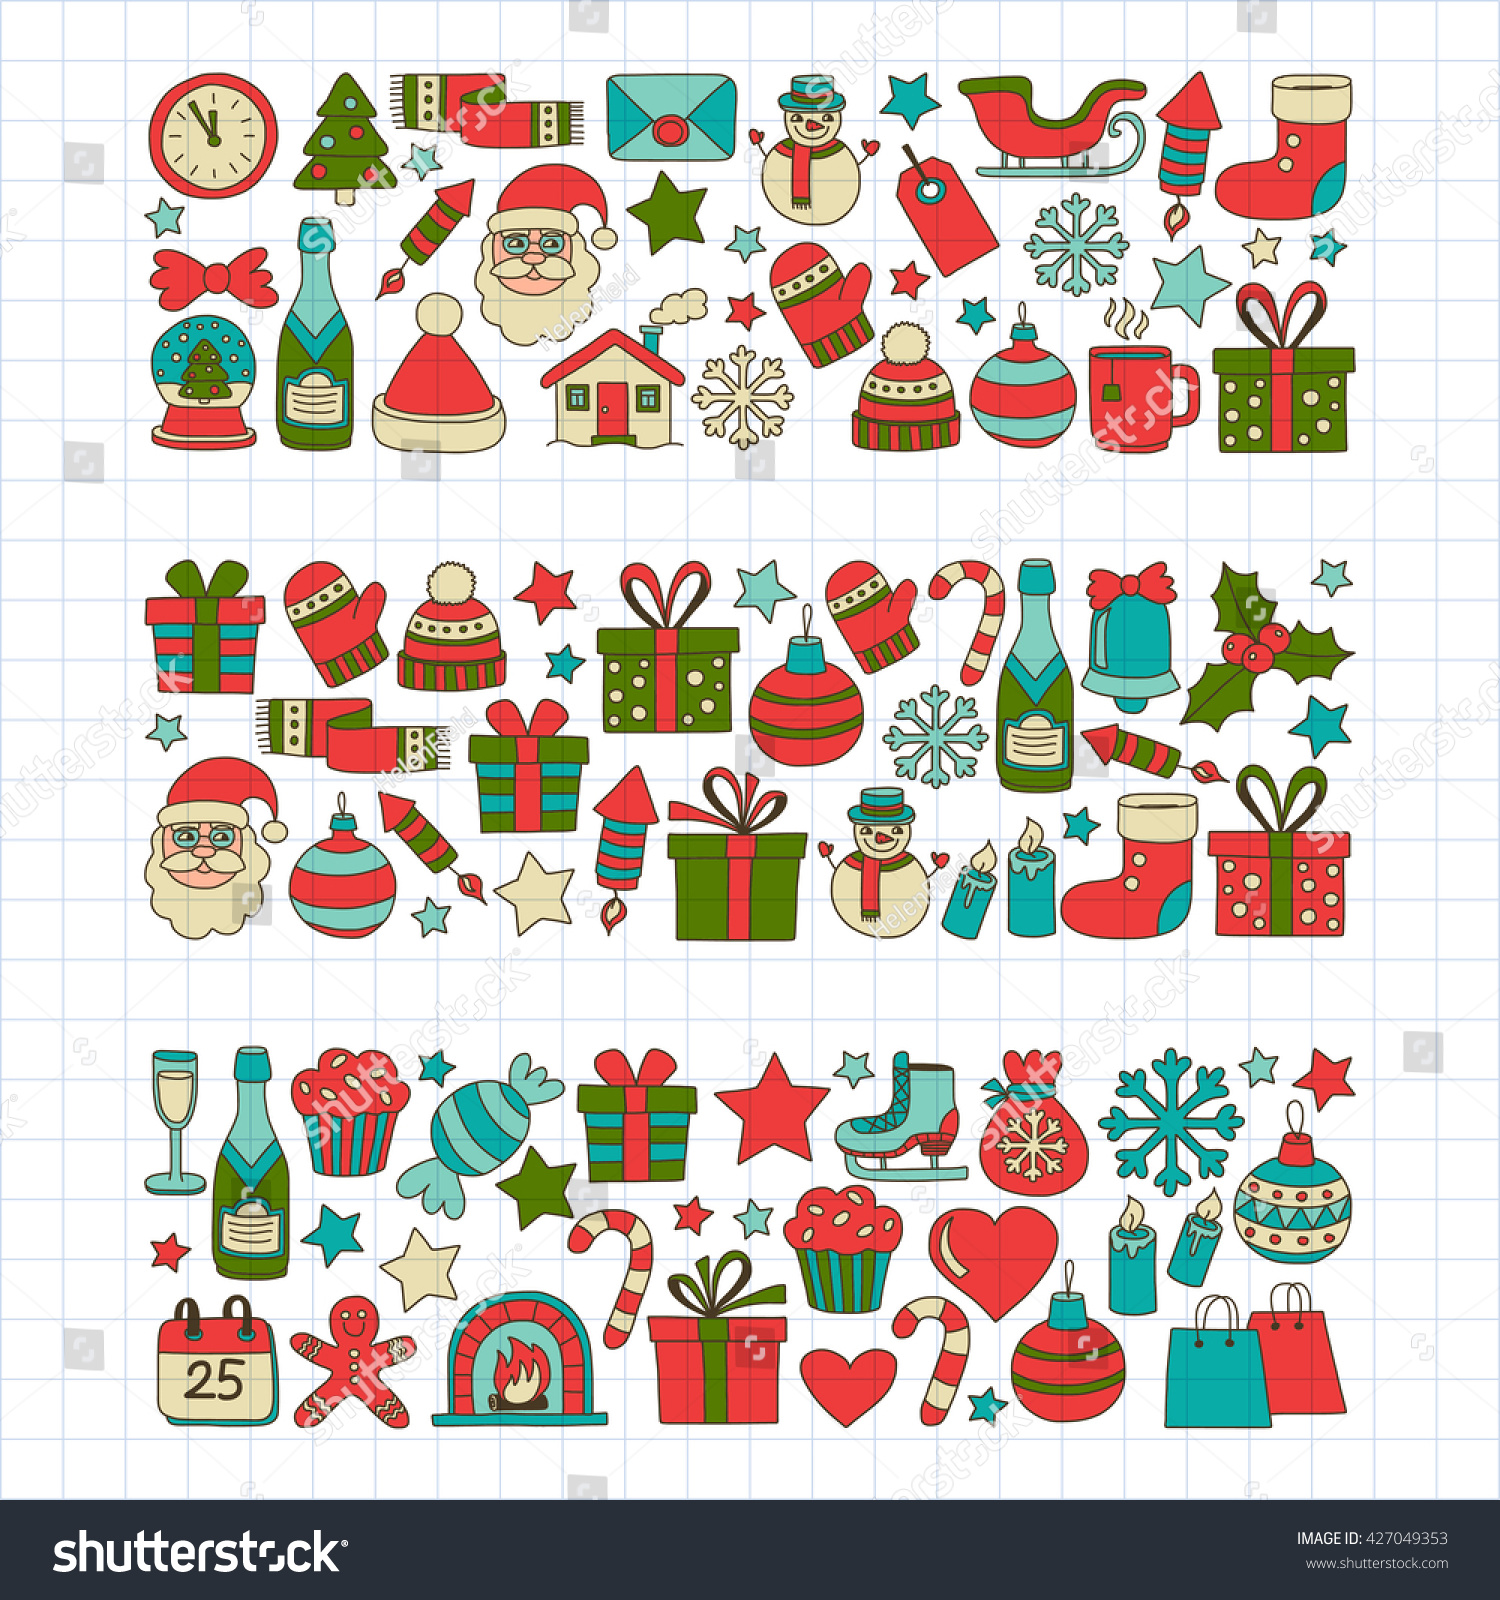 Doodle Vector Icons Merry Christmas And Happy New Year - 427049353 : Shutterstock